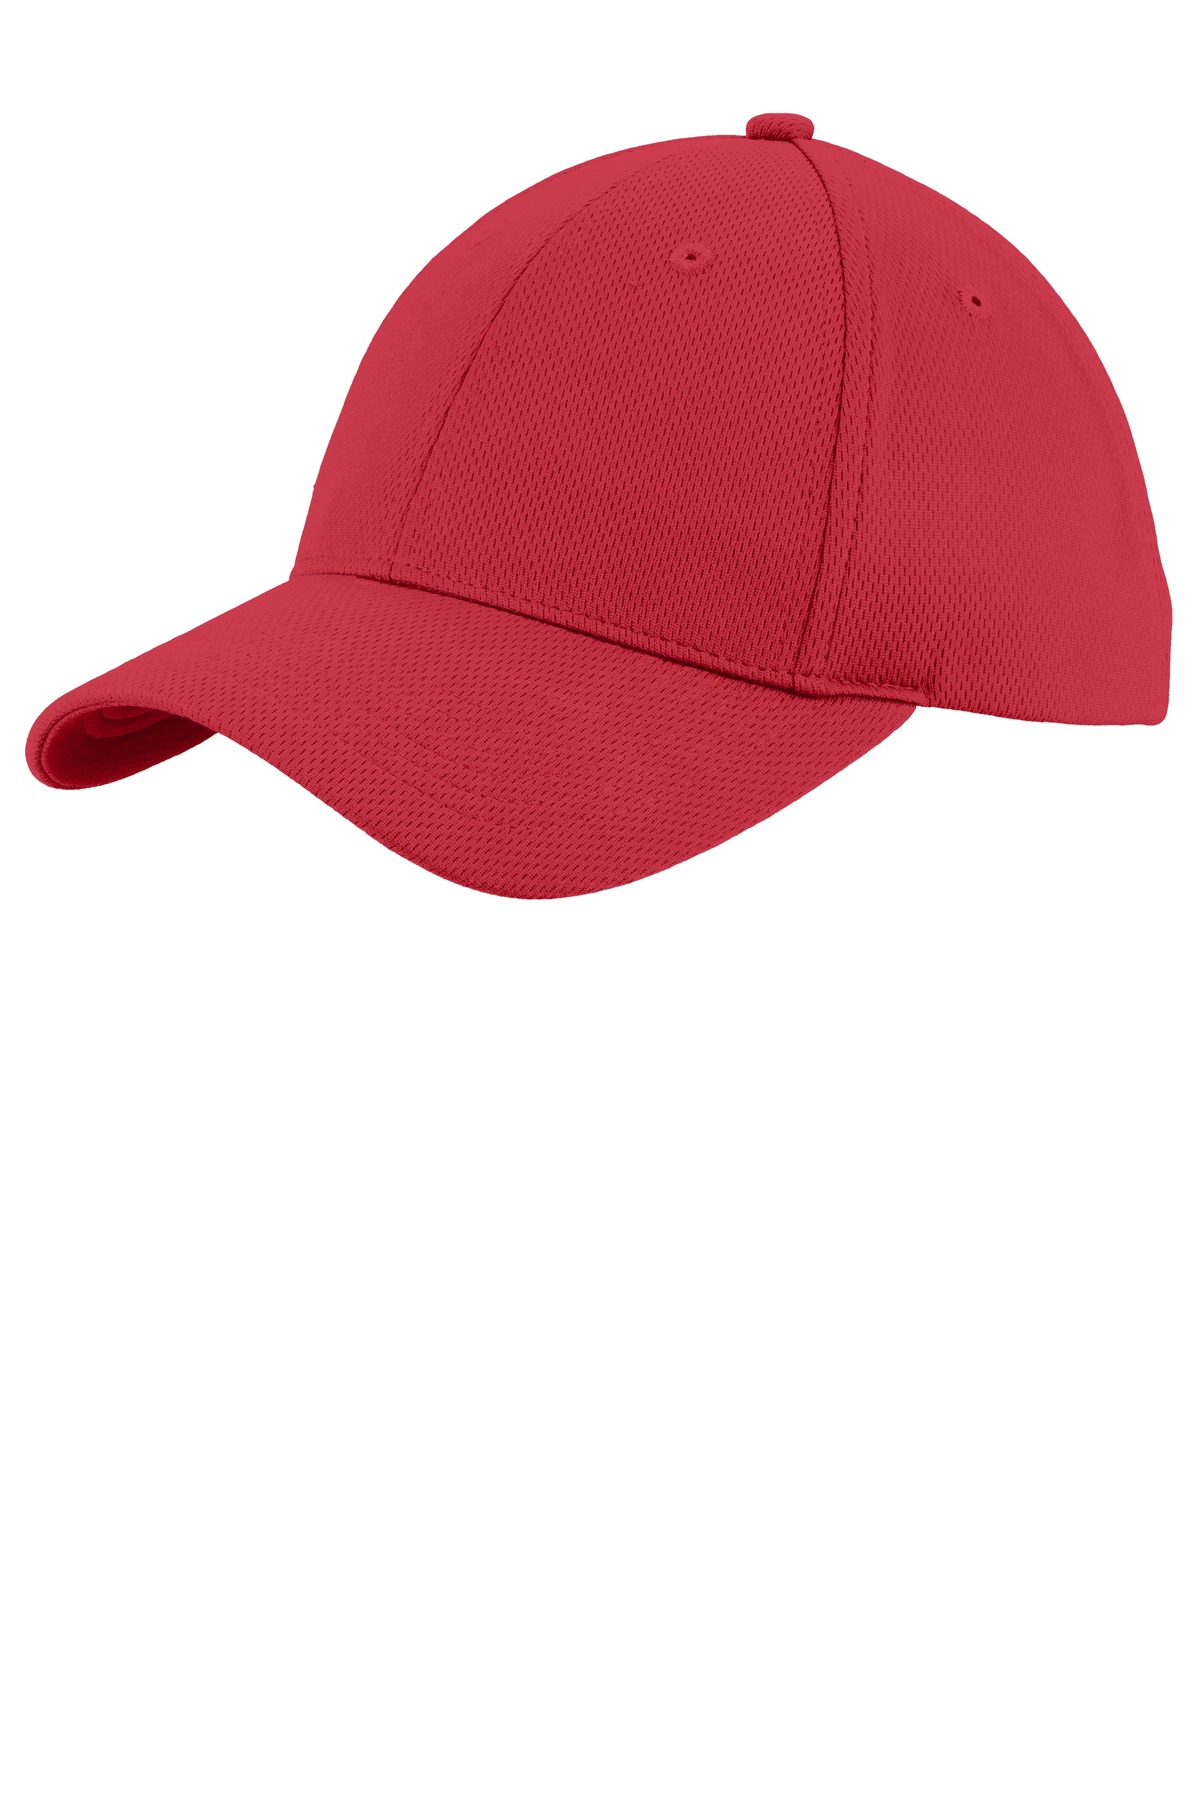 Sport-Tek ®  PosiCharge ®  RacerMesh ®  Cap. STC26 - True Red